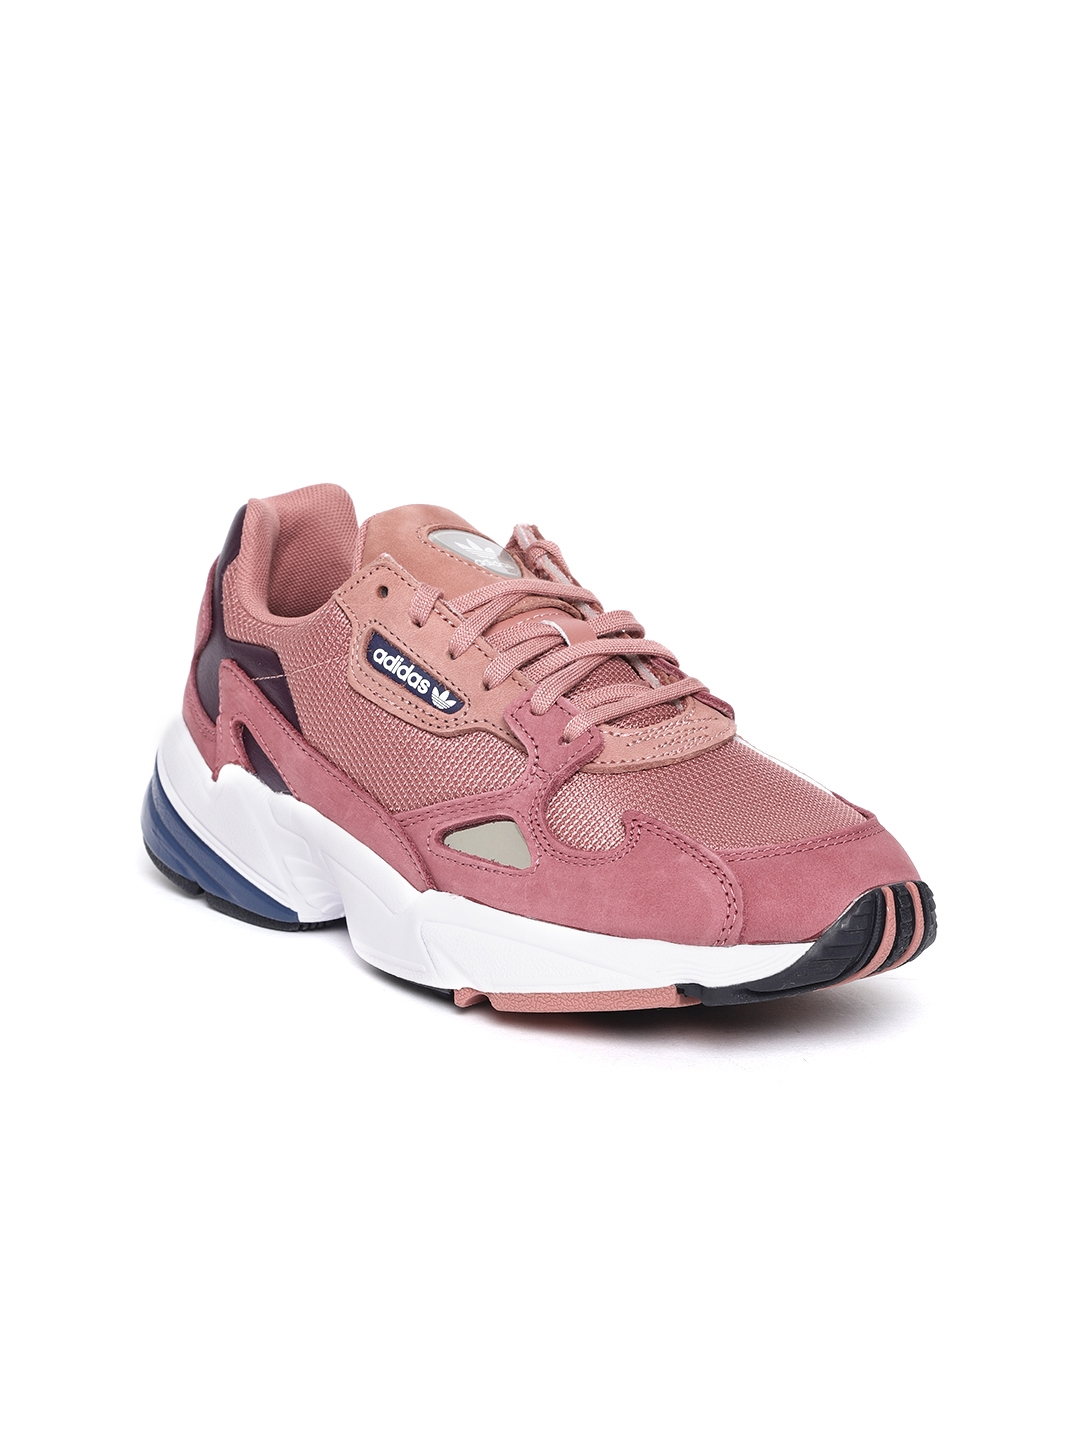 7f36622400ff3 ADIDAS Originals Women Rust Red   Pink Falcon Colourblocked Sneakers